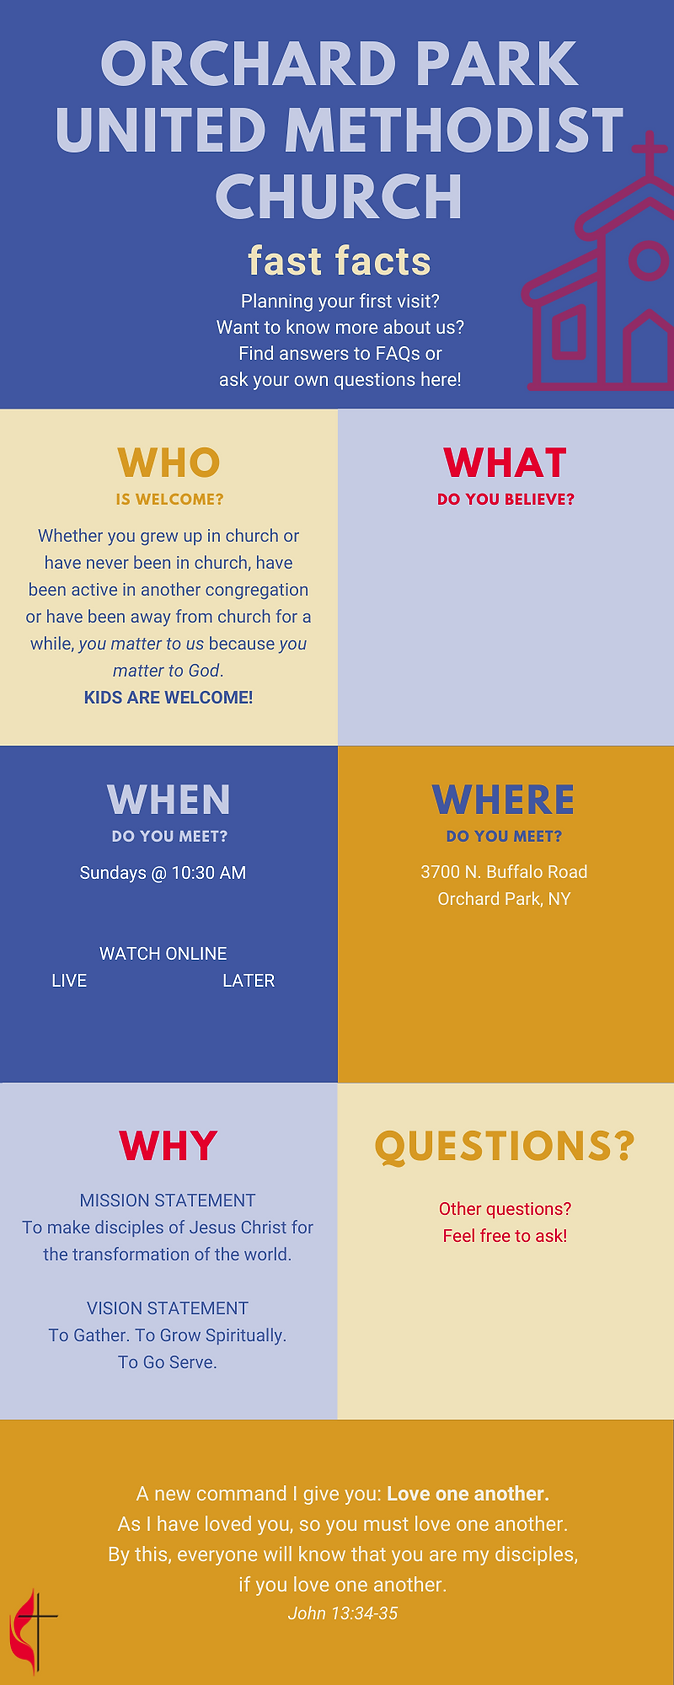 OPUMC Infographic.png